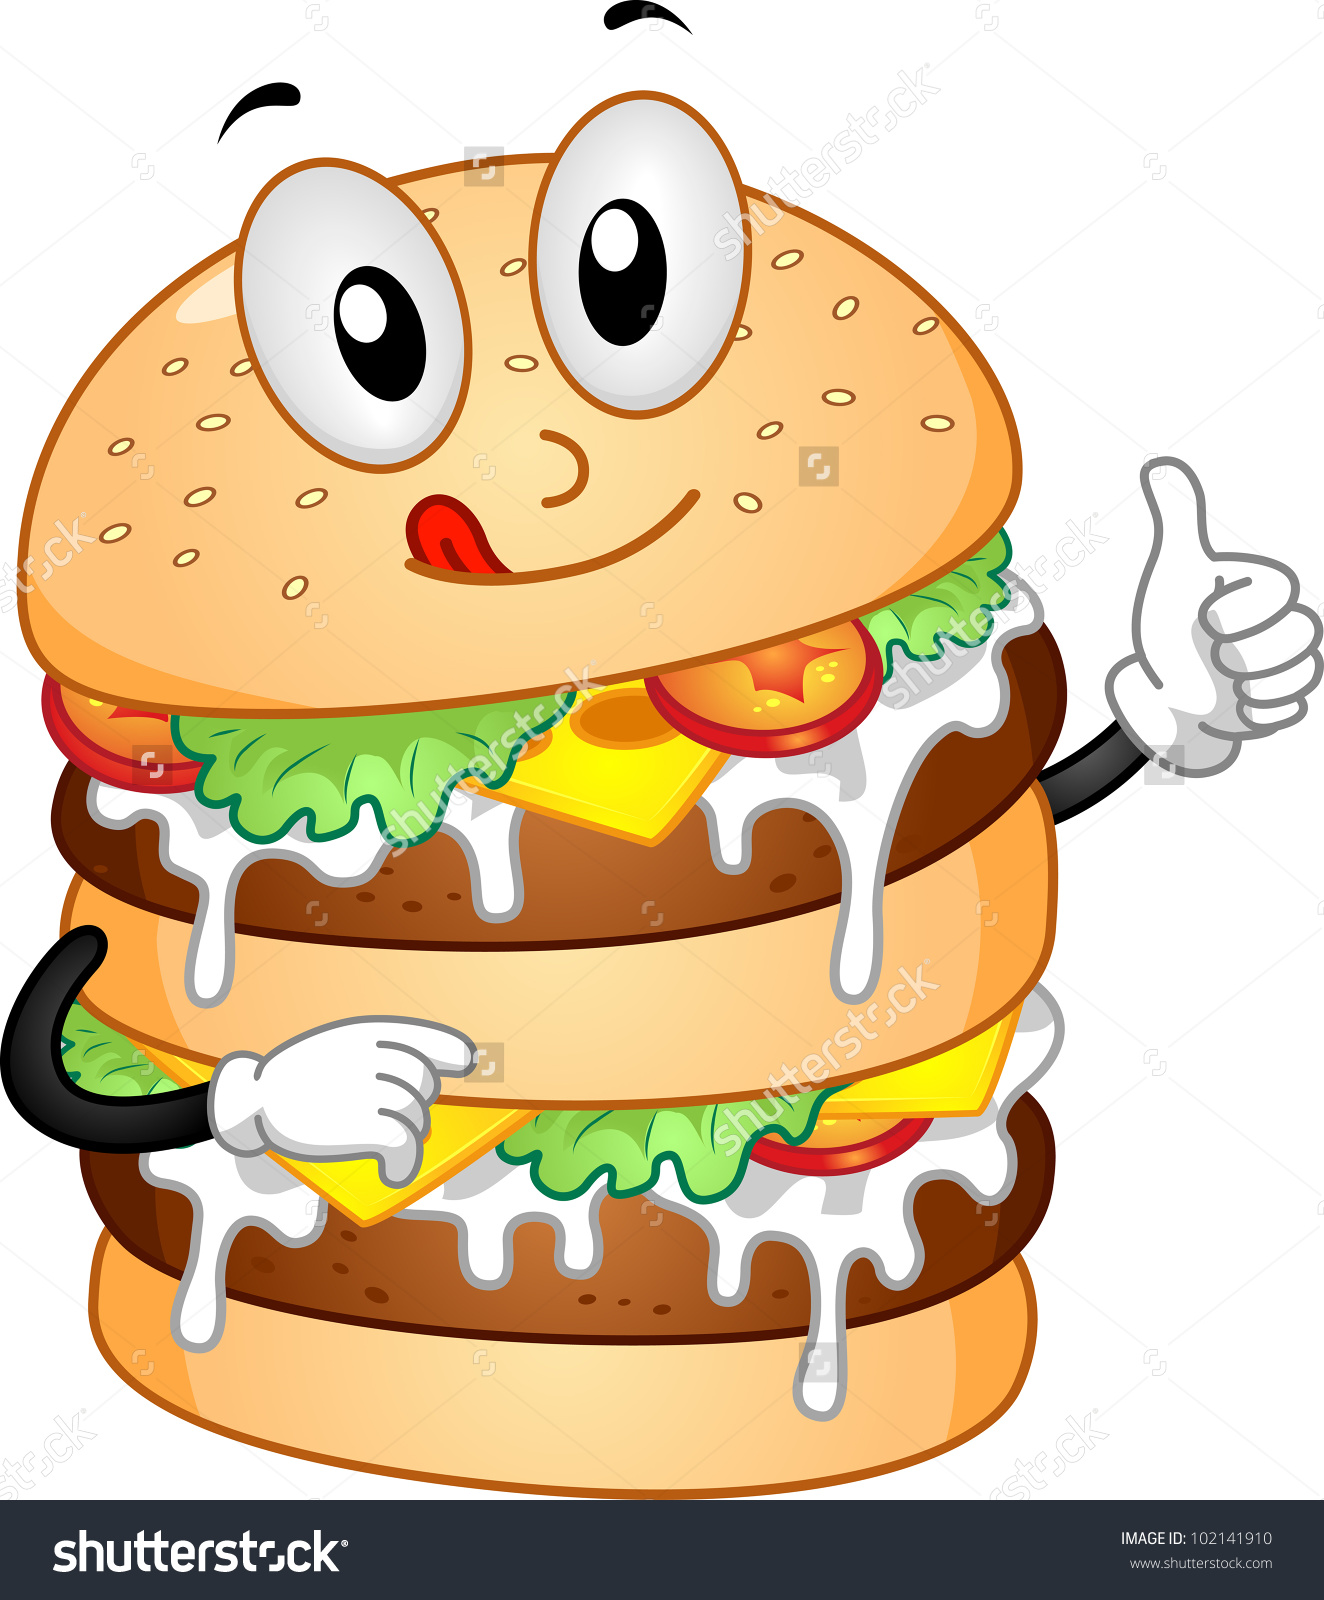 Mascot Illustration Featuring Burger Double Patties Stock Vector.